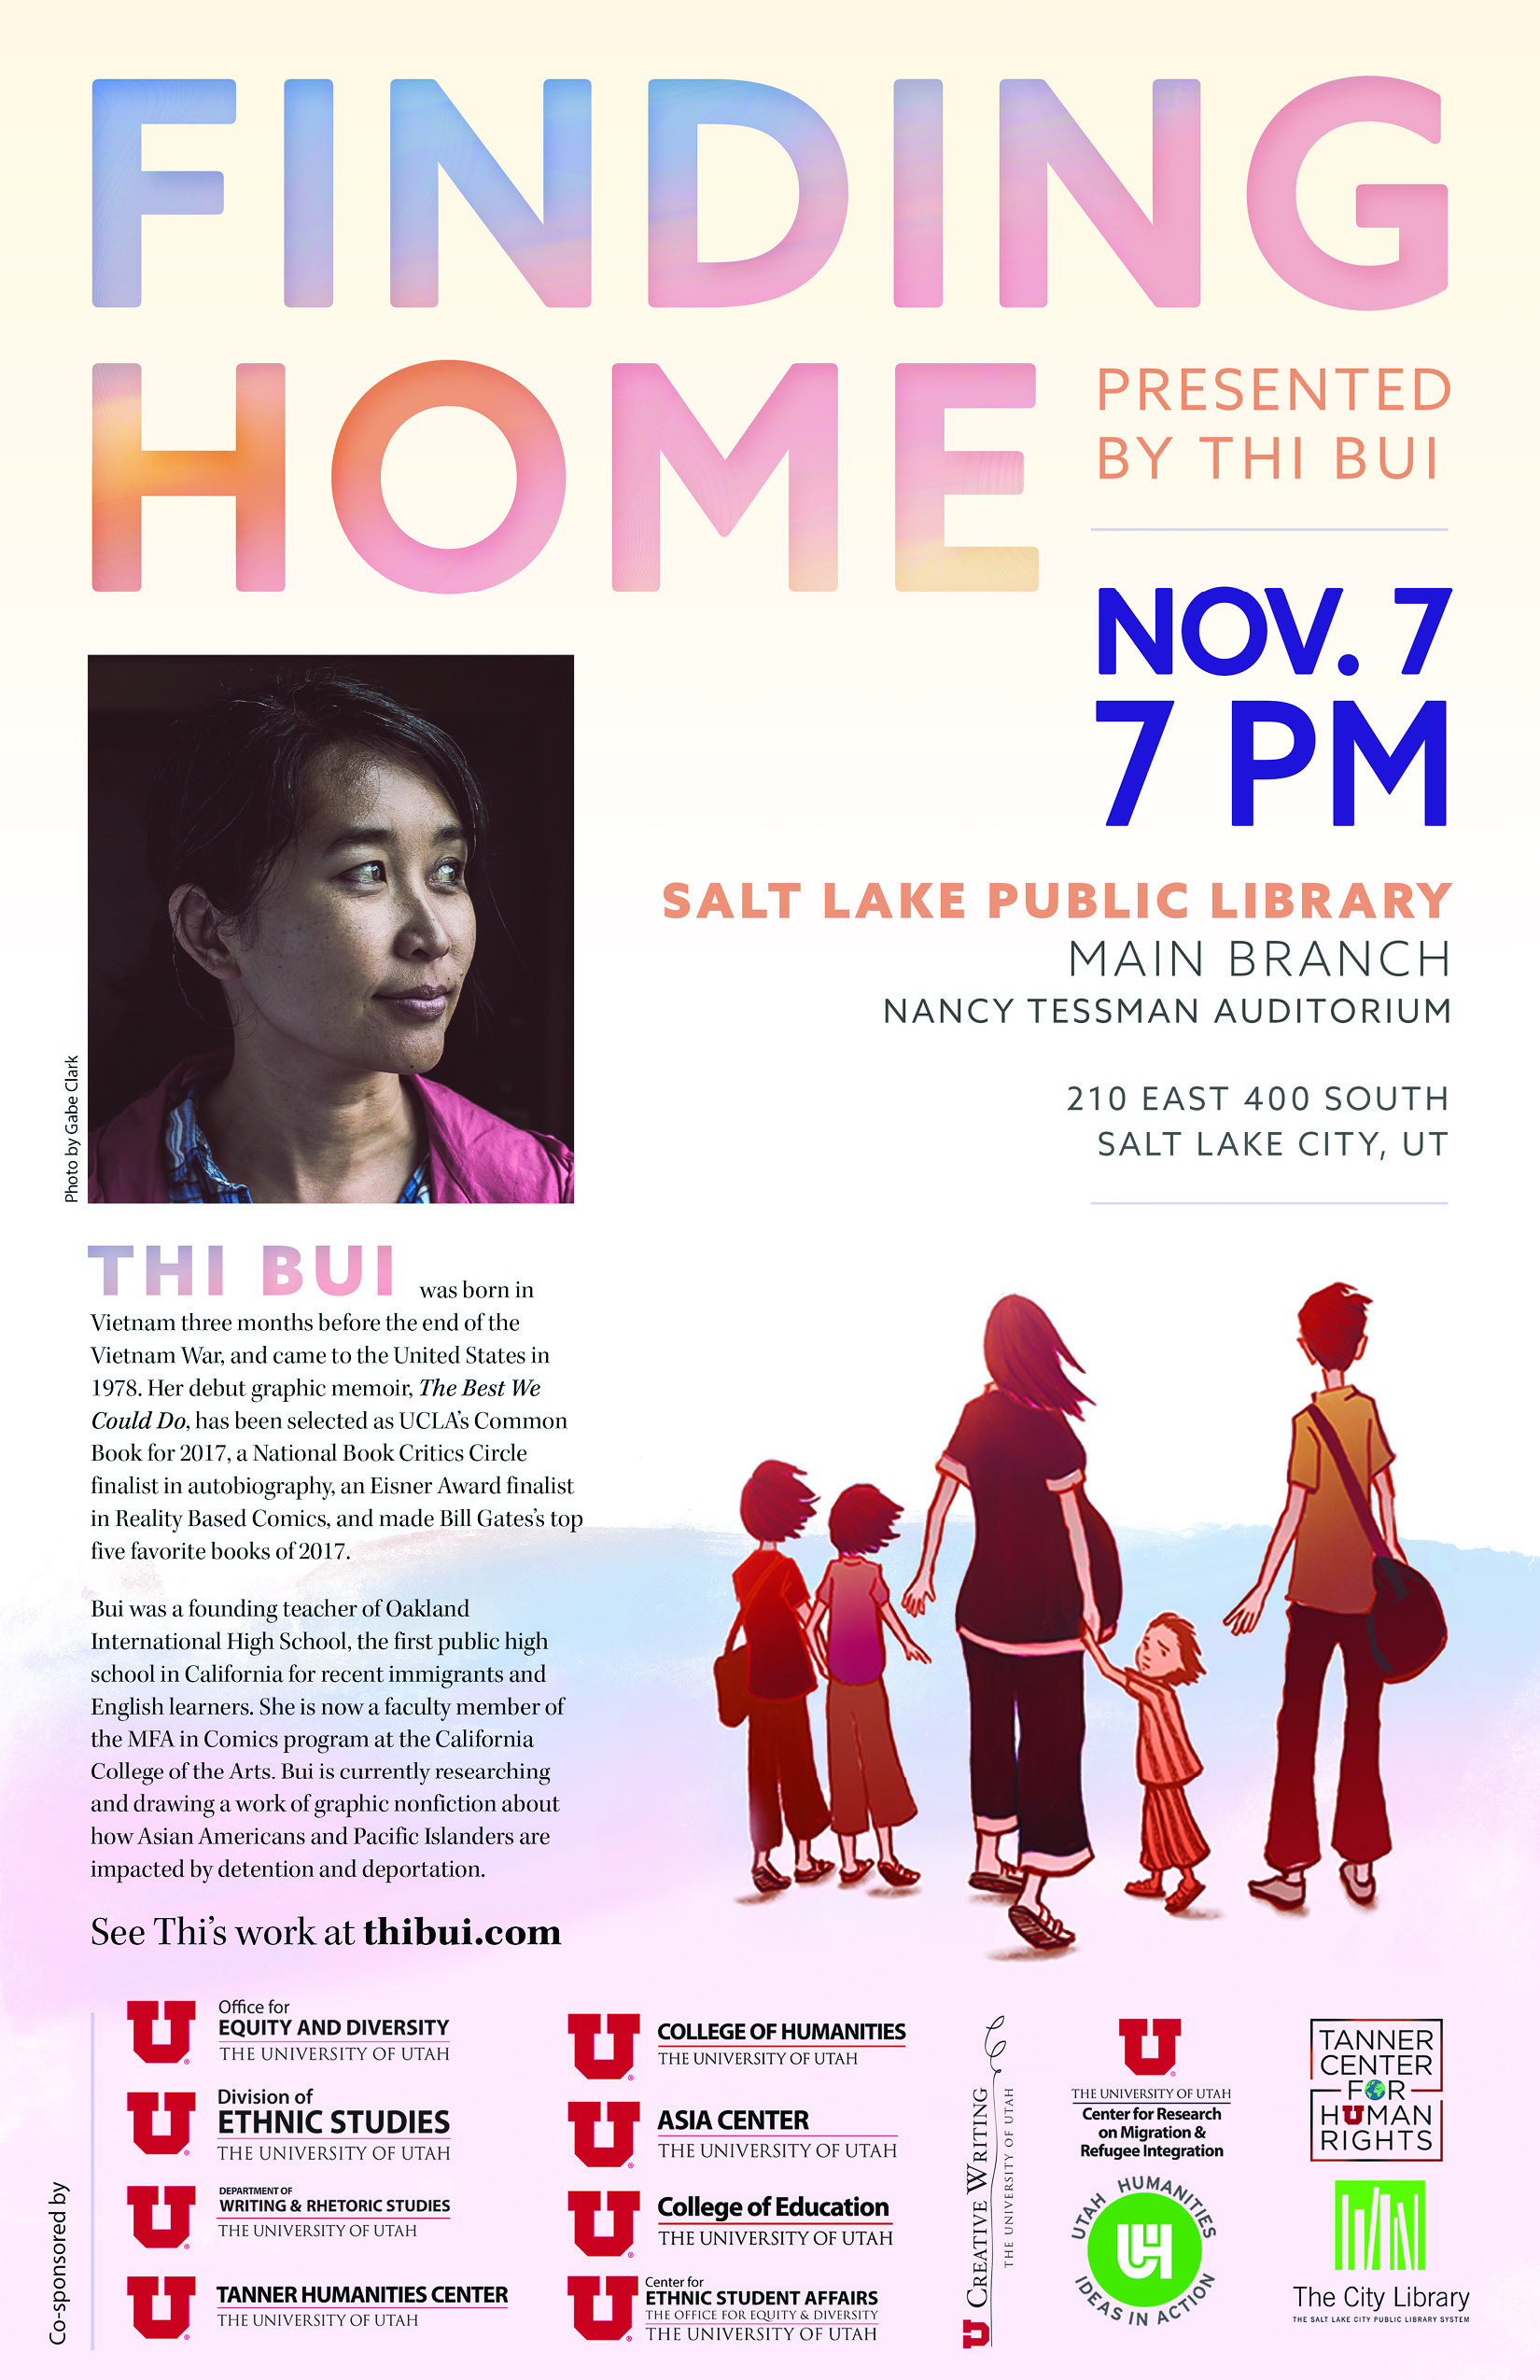 'Finding Home' presented by Thi Bui